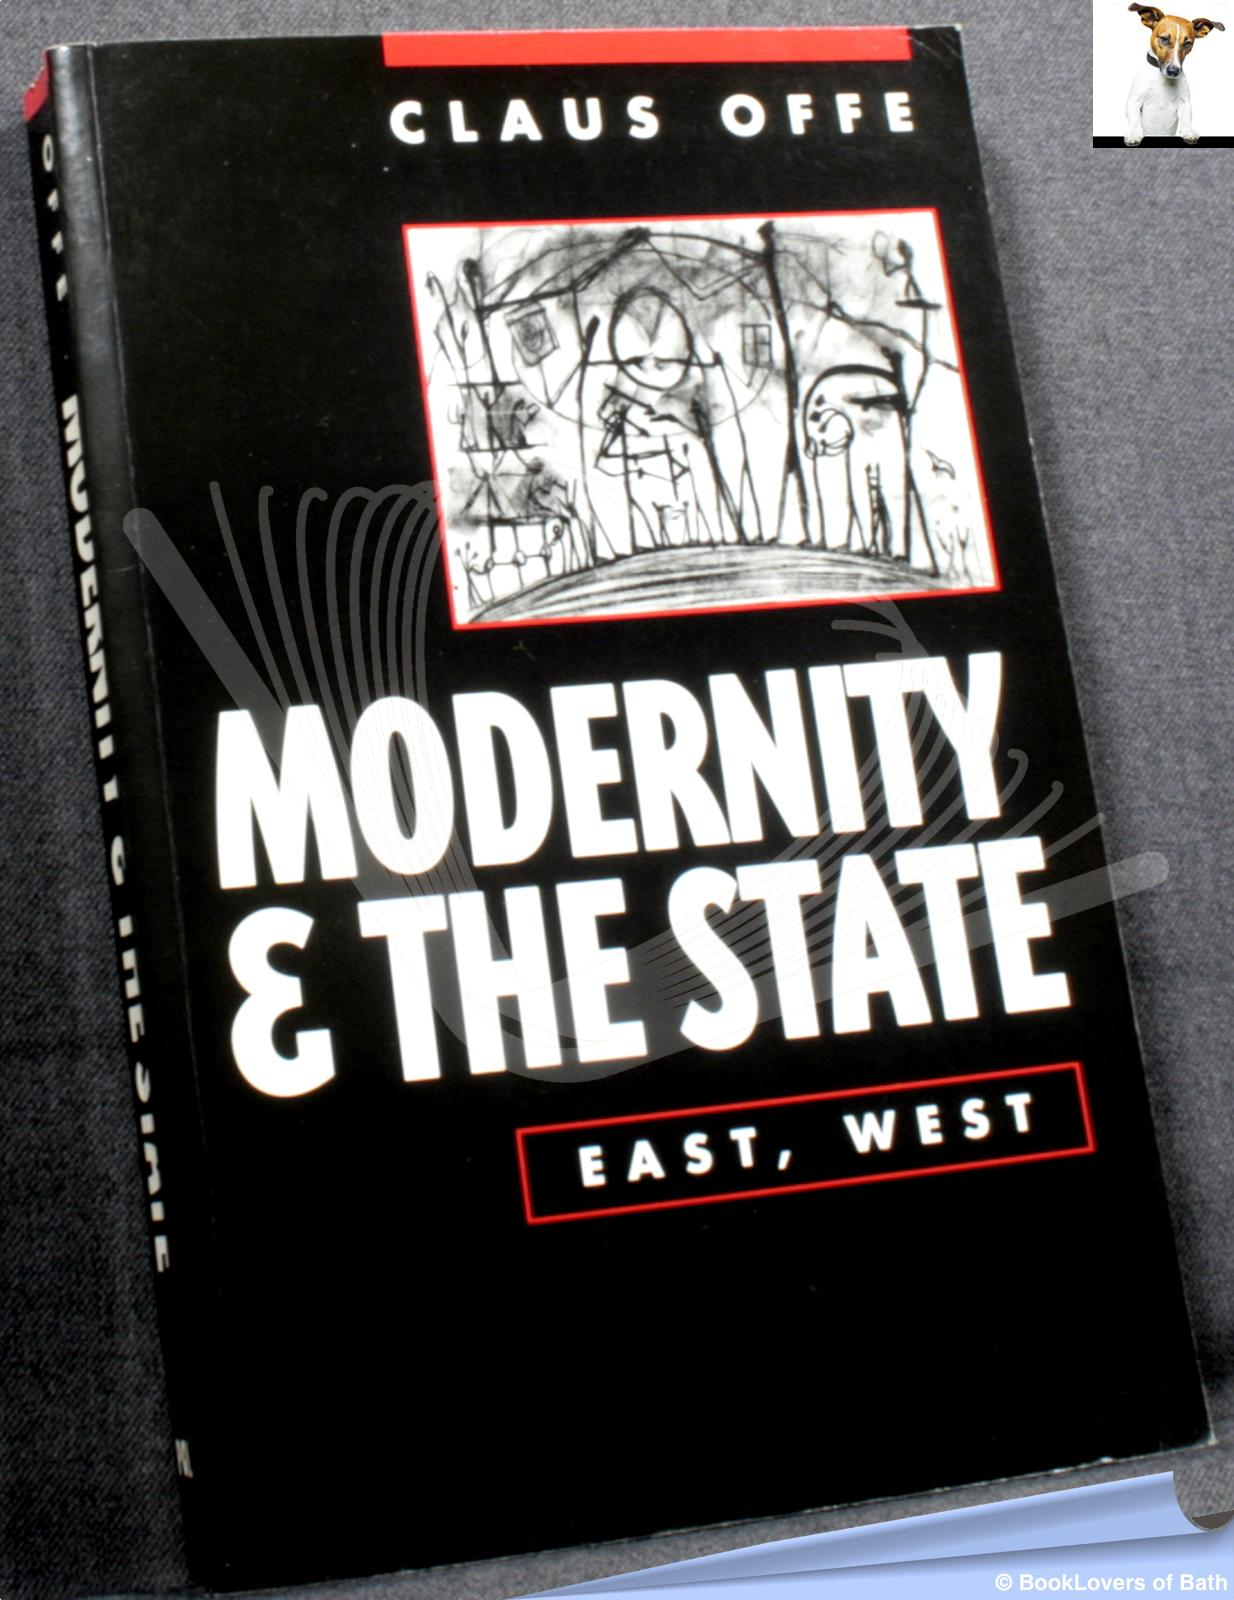 Modernity and the State: East, West - Claus Offe